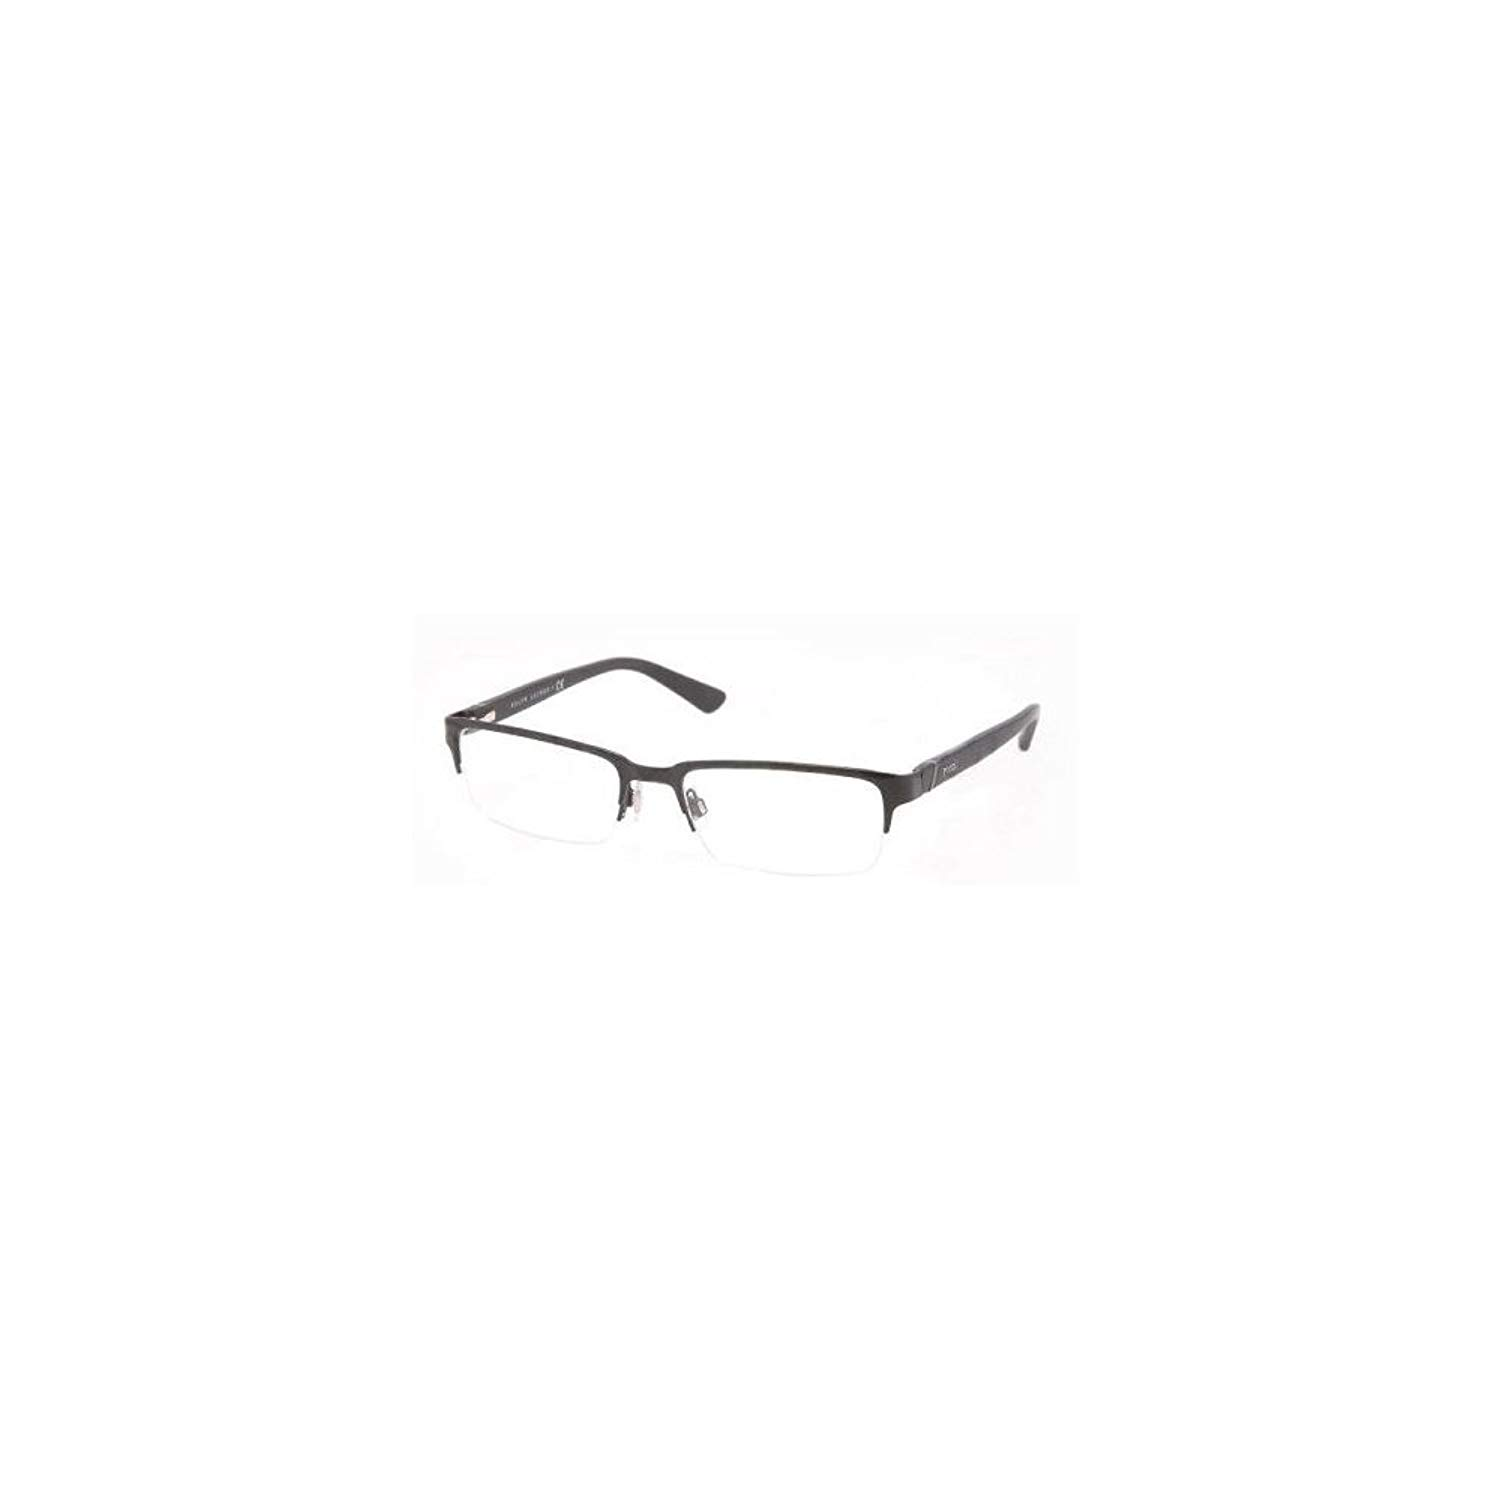 da5215b6c76 Get Quotations · Polo PH1134 Eyeglasses-9038 Matte Black-54mm